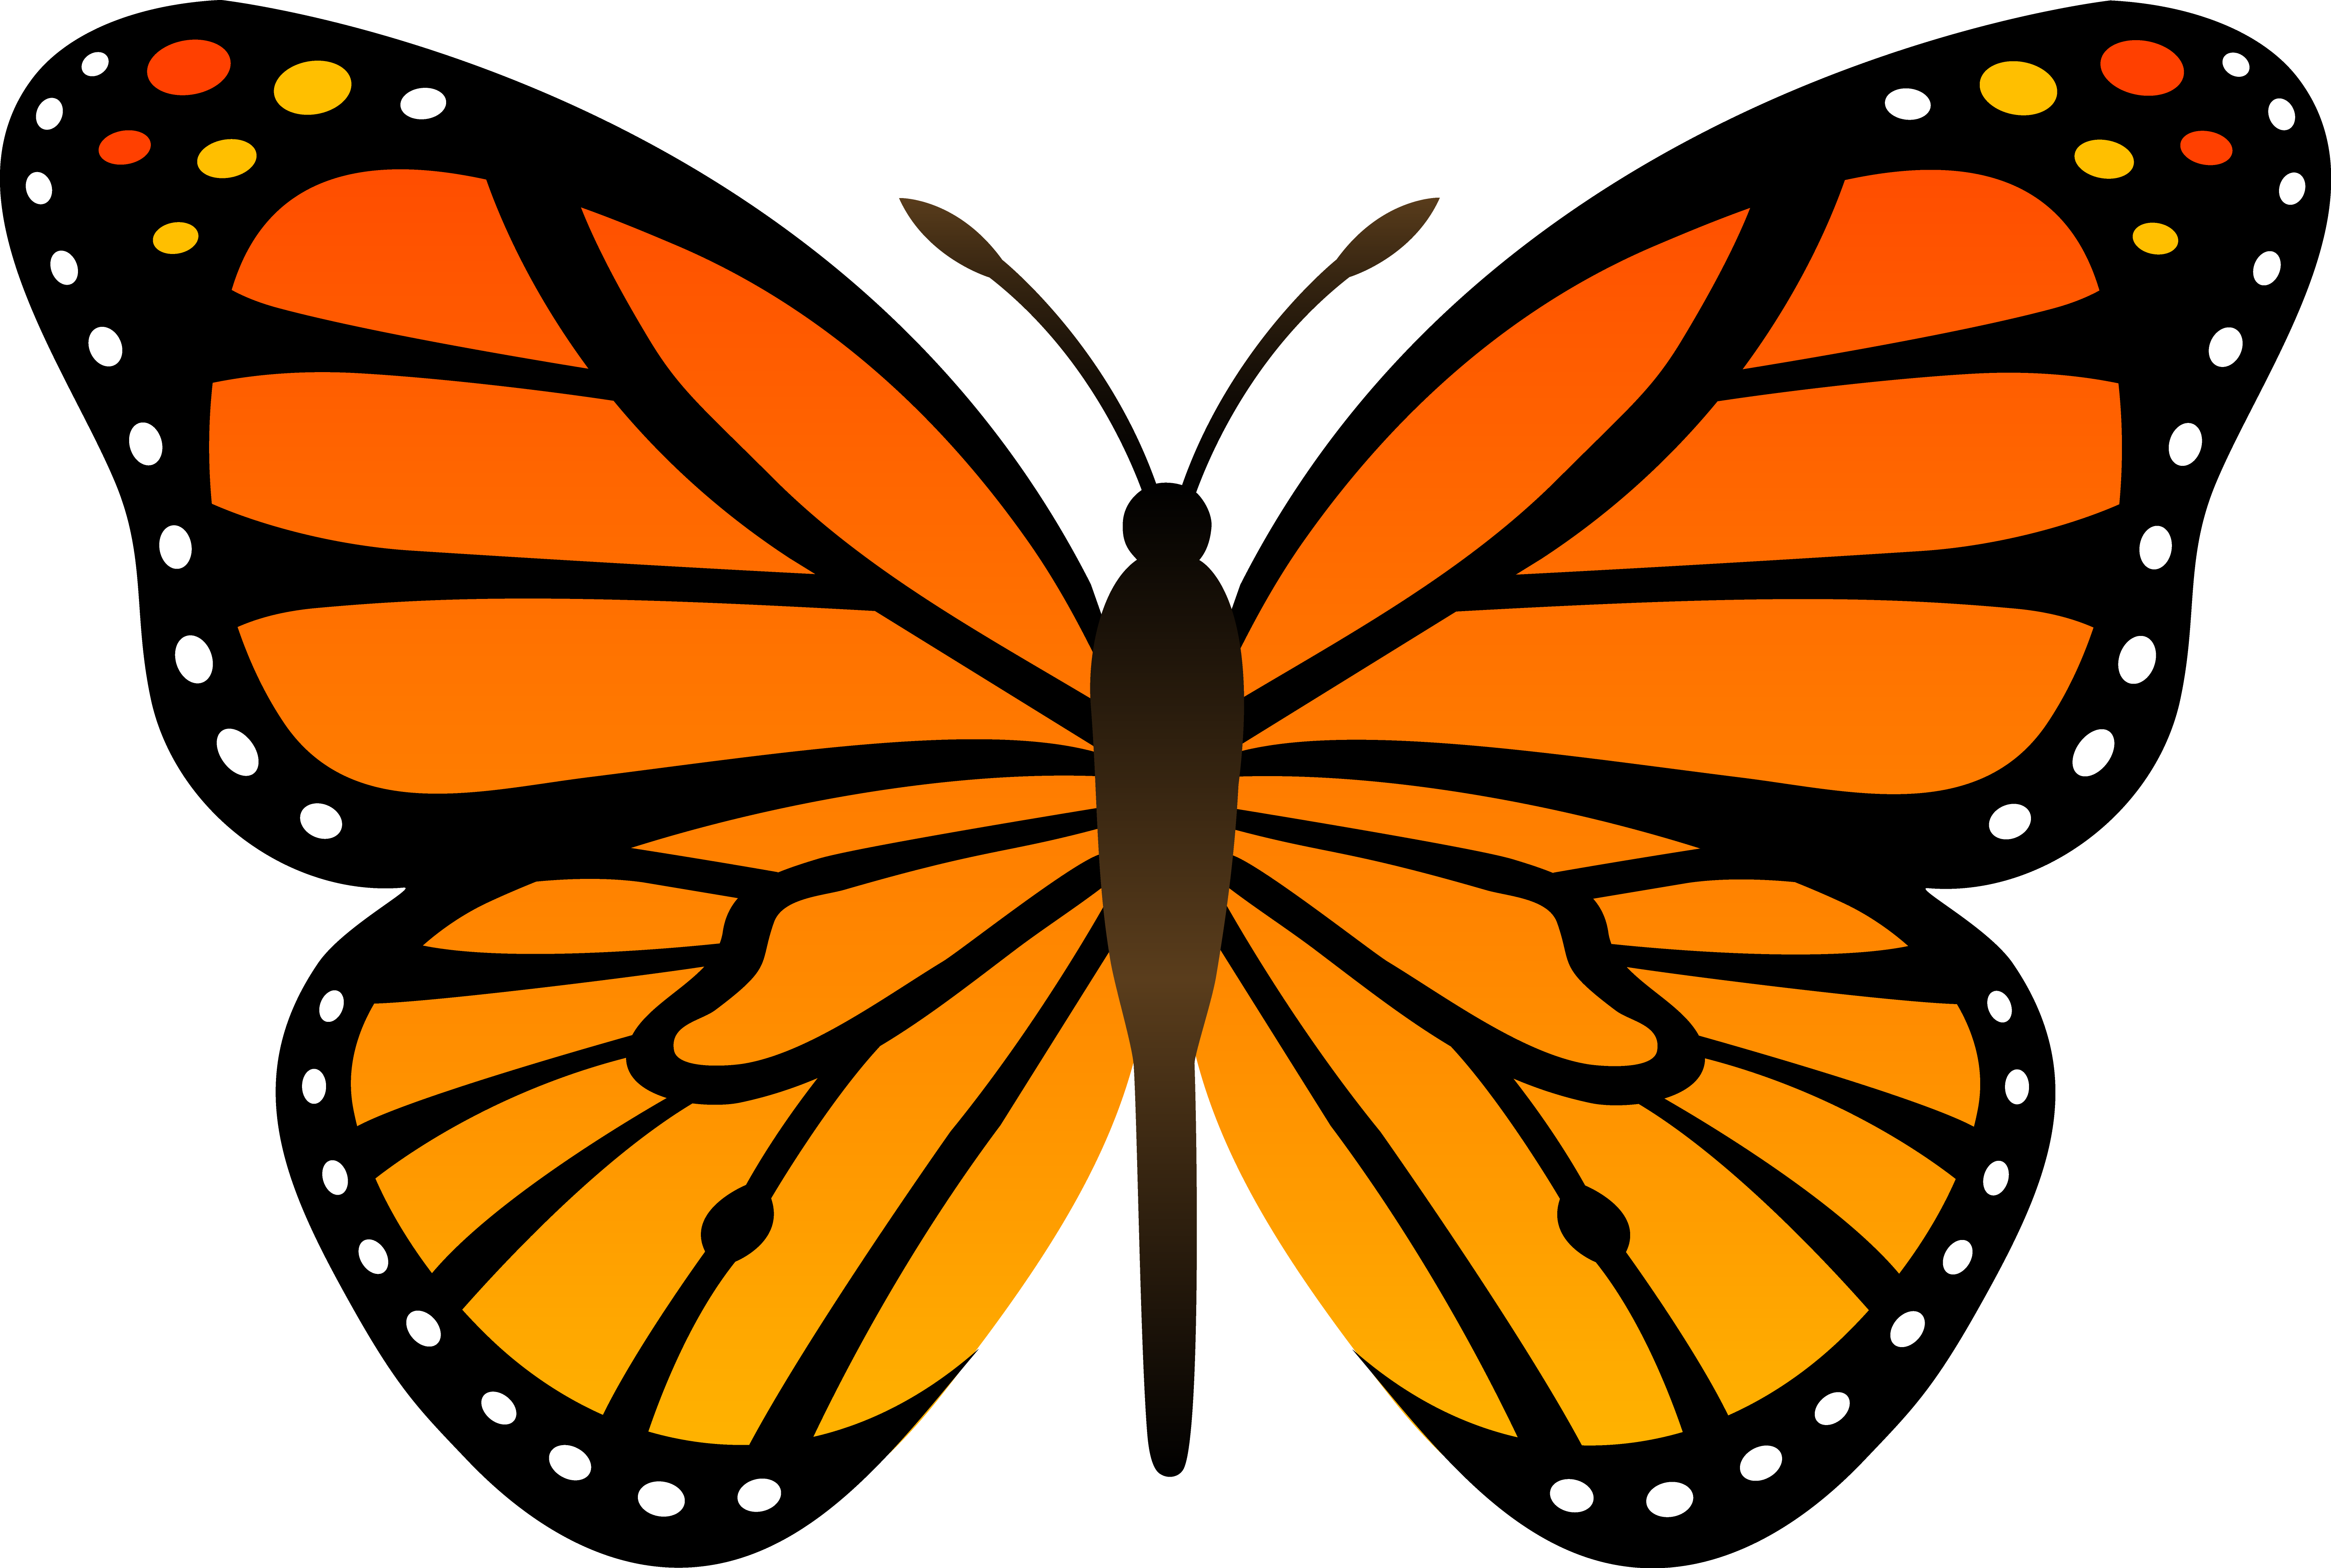 Free butterfly pictures clipart image transparent download Monarch Butterfly Clipart & Look At Clip Art Images - ClipartLook image transparent download